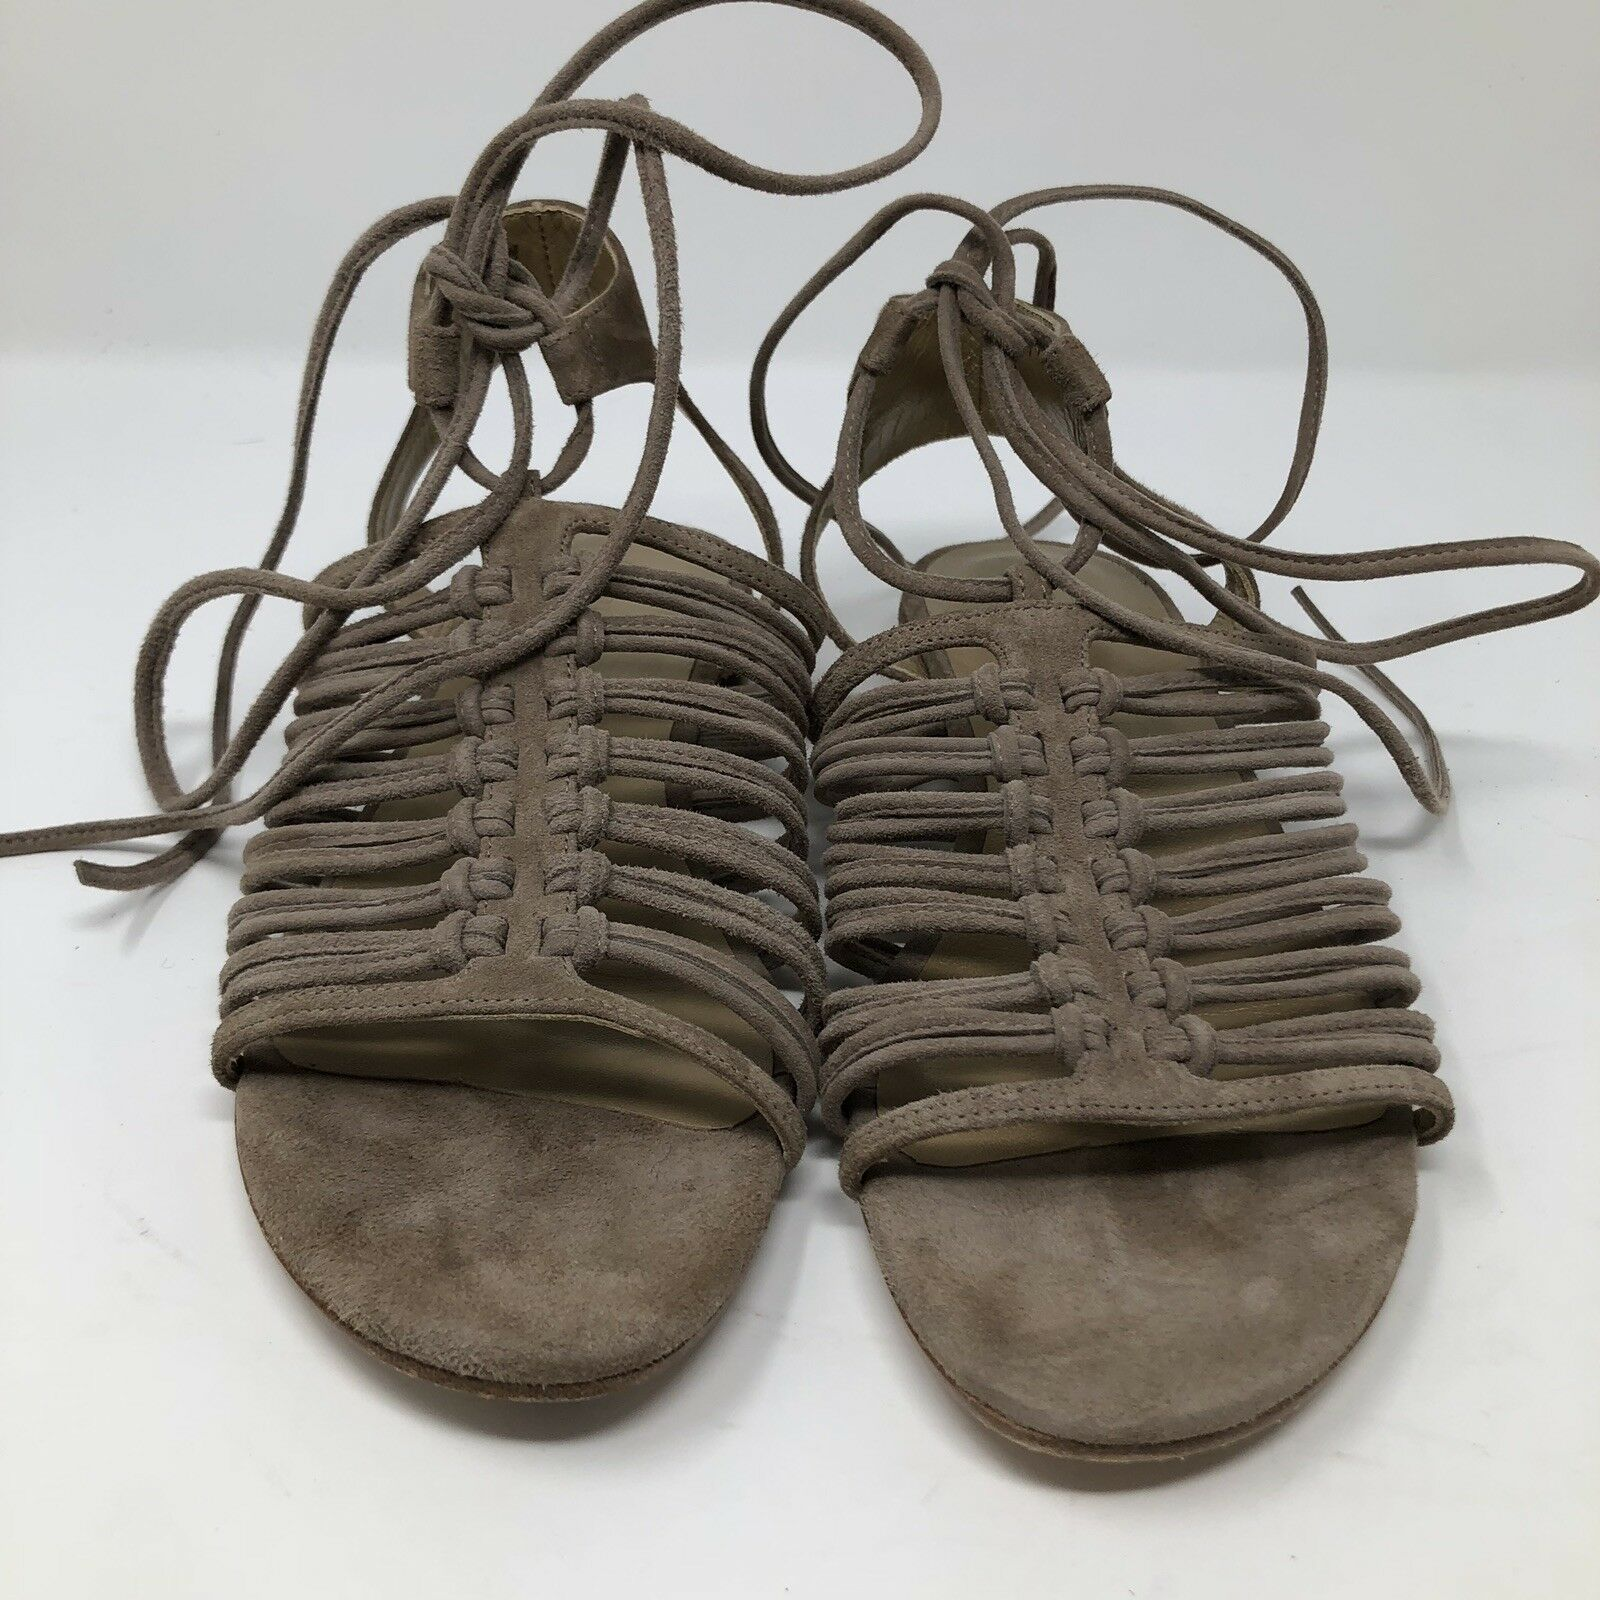 STUART WEITZMAN donna donna donna KNOTAGAIN LACE UP SANDALS Dimensione 7.5 Taupe Marronee Suede  495 0c58f2